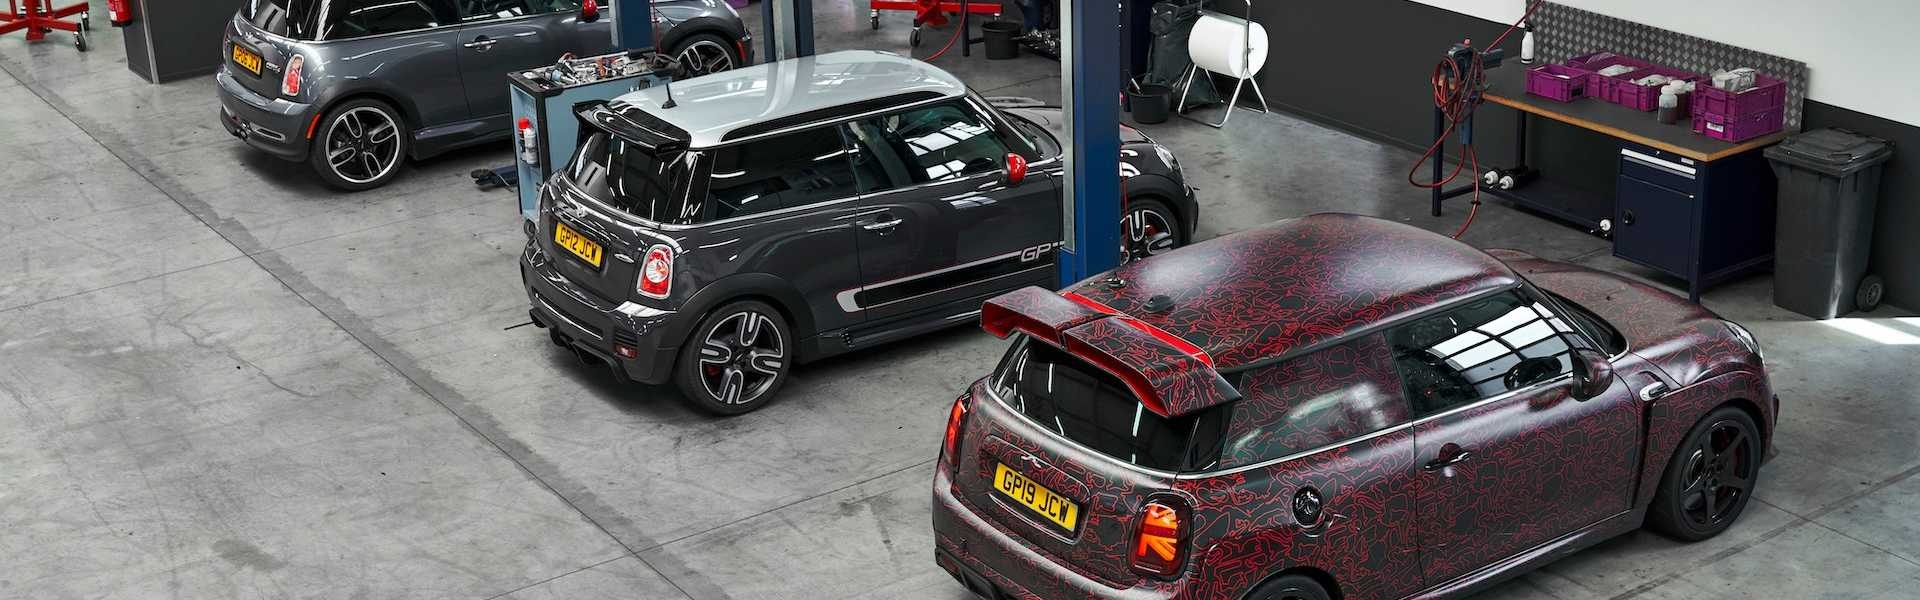 2020-mini-john-cooper-works-gp-prototype (7).jpg